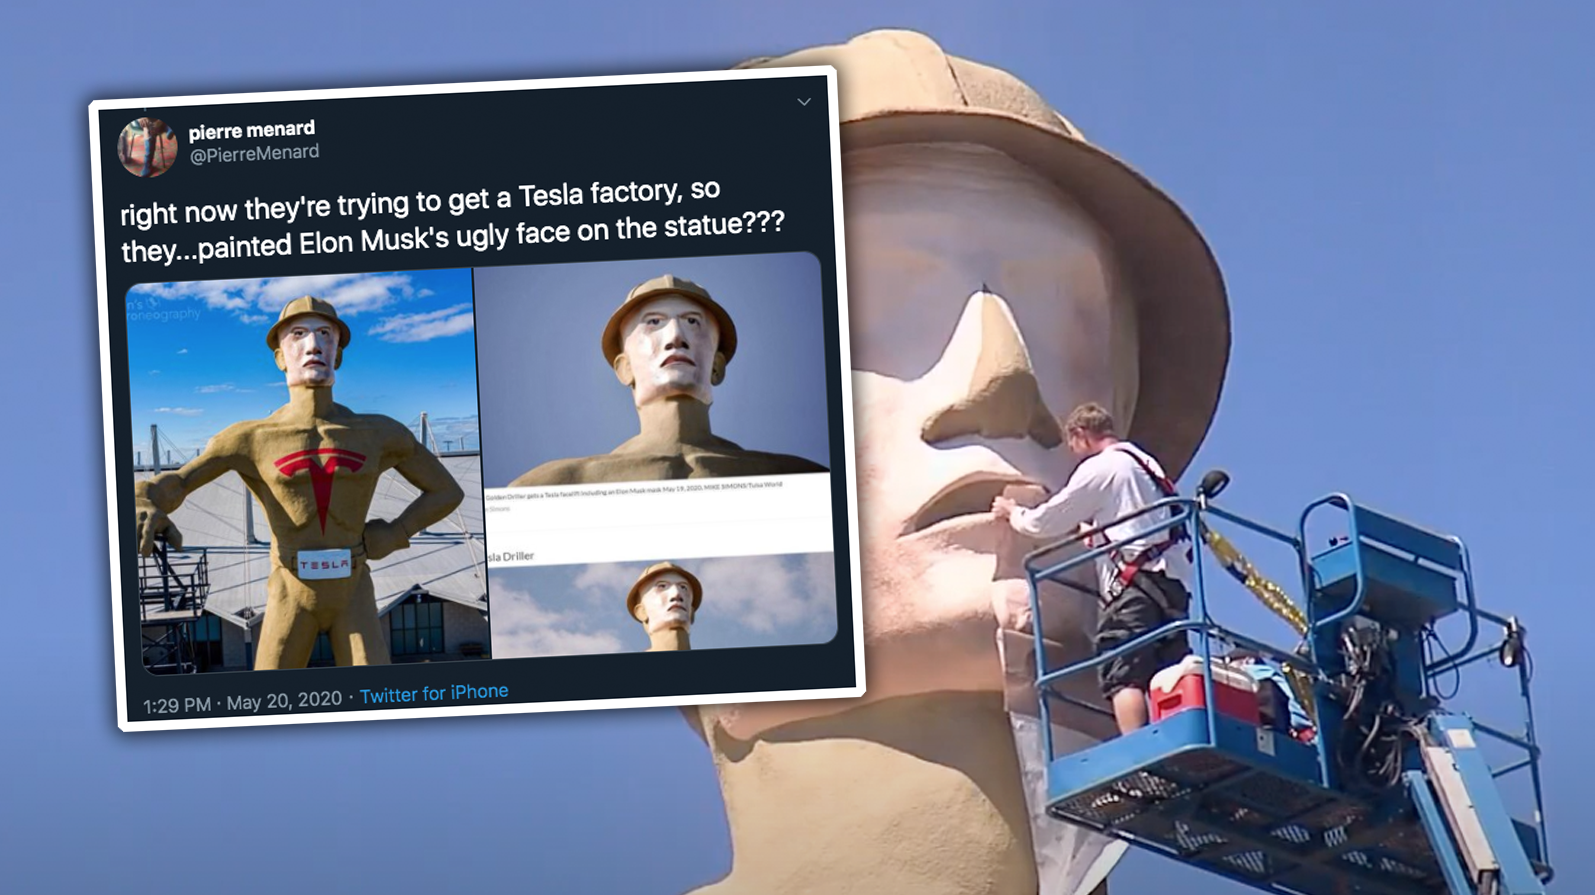 Tulsa Dresses Up Their Big Creepy Statue To Look Like Big Creepy Elon Musk In Hopes Of Getting The Cybertruck Mill